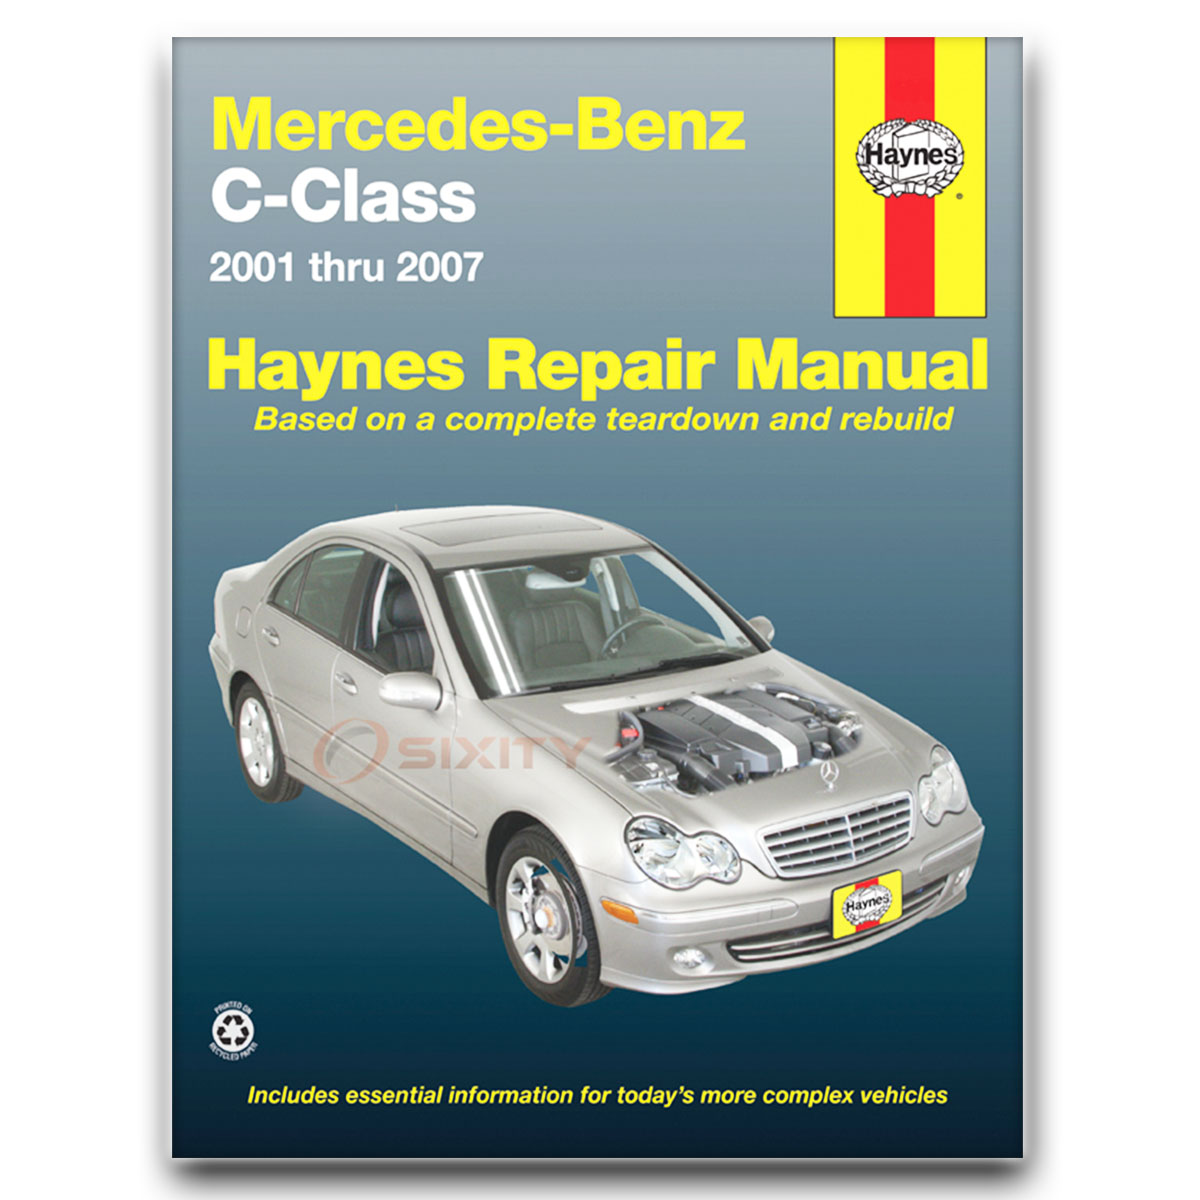 Haynes Repair Manual 63040 for Mercedes Benz C-Class 01-07 Shop Service pq